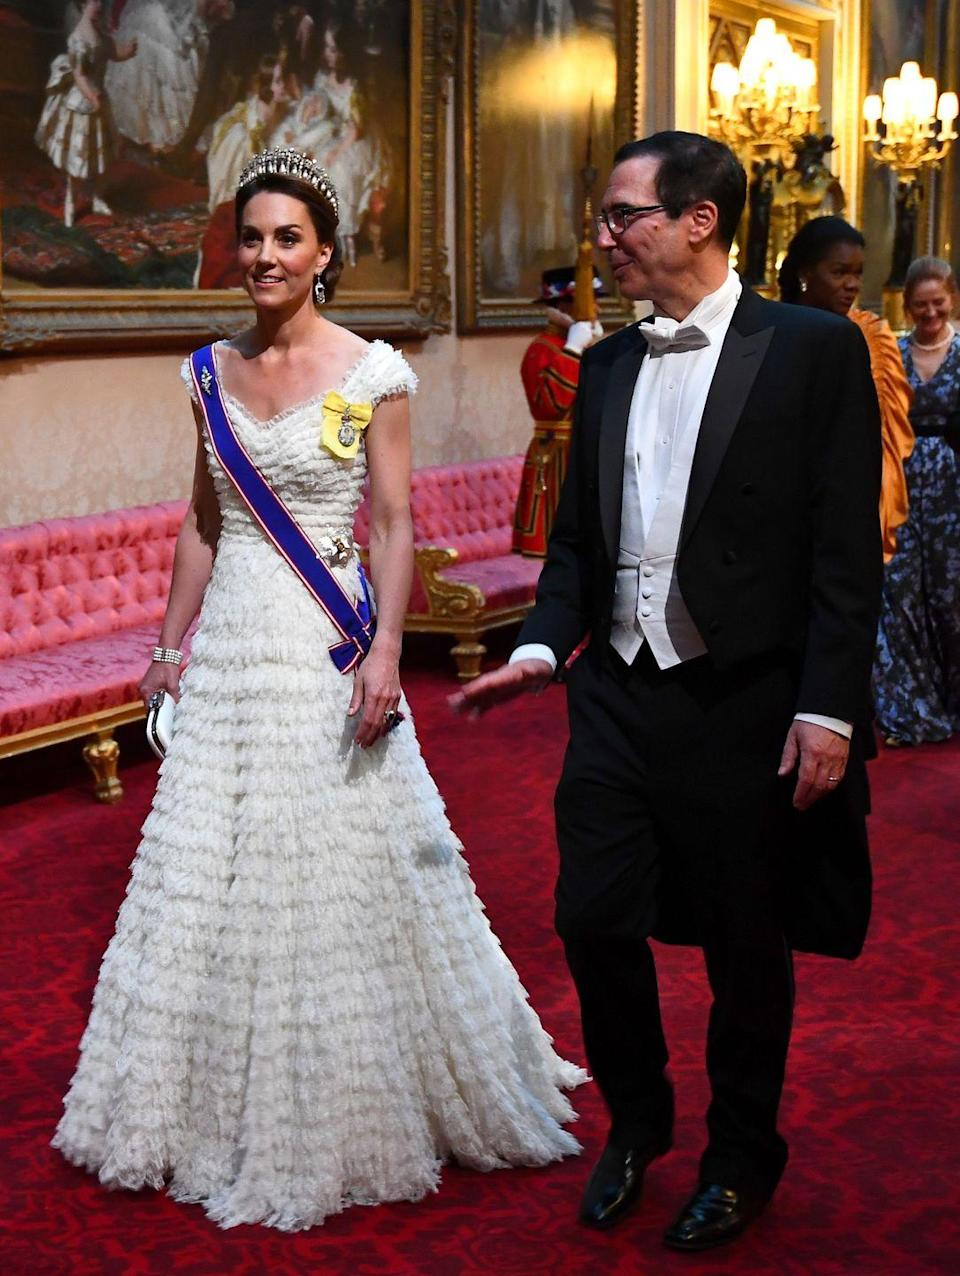 """<p><a href=""""https://www.townandcountrymag.com/style/fashion-trends/a27682334/kate-middleton-jewelry-dress-buckingham-palace-state-banquet-donald-trump/"""" rel=""""nofollow noopener"""" target=""""_blank"""" data-ylk=""""slk:Kate wore a tiered Alexander McQueen gown to a state banquet with Donald Trump"""" class=""""link rapid-noclick-resp"""">Kate wore a tiered Alexander McQueen gown to a state banquet with Donald Trump</a>. She paired the dress with the Lover's Knot Tiara, and the Queen Mother's sapphire and diamond fringe earrings.</p>"""